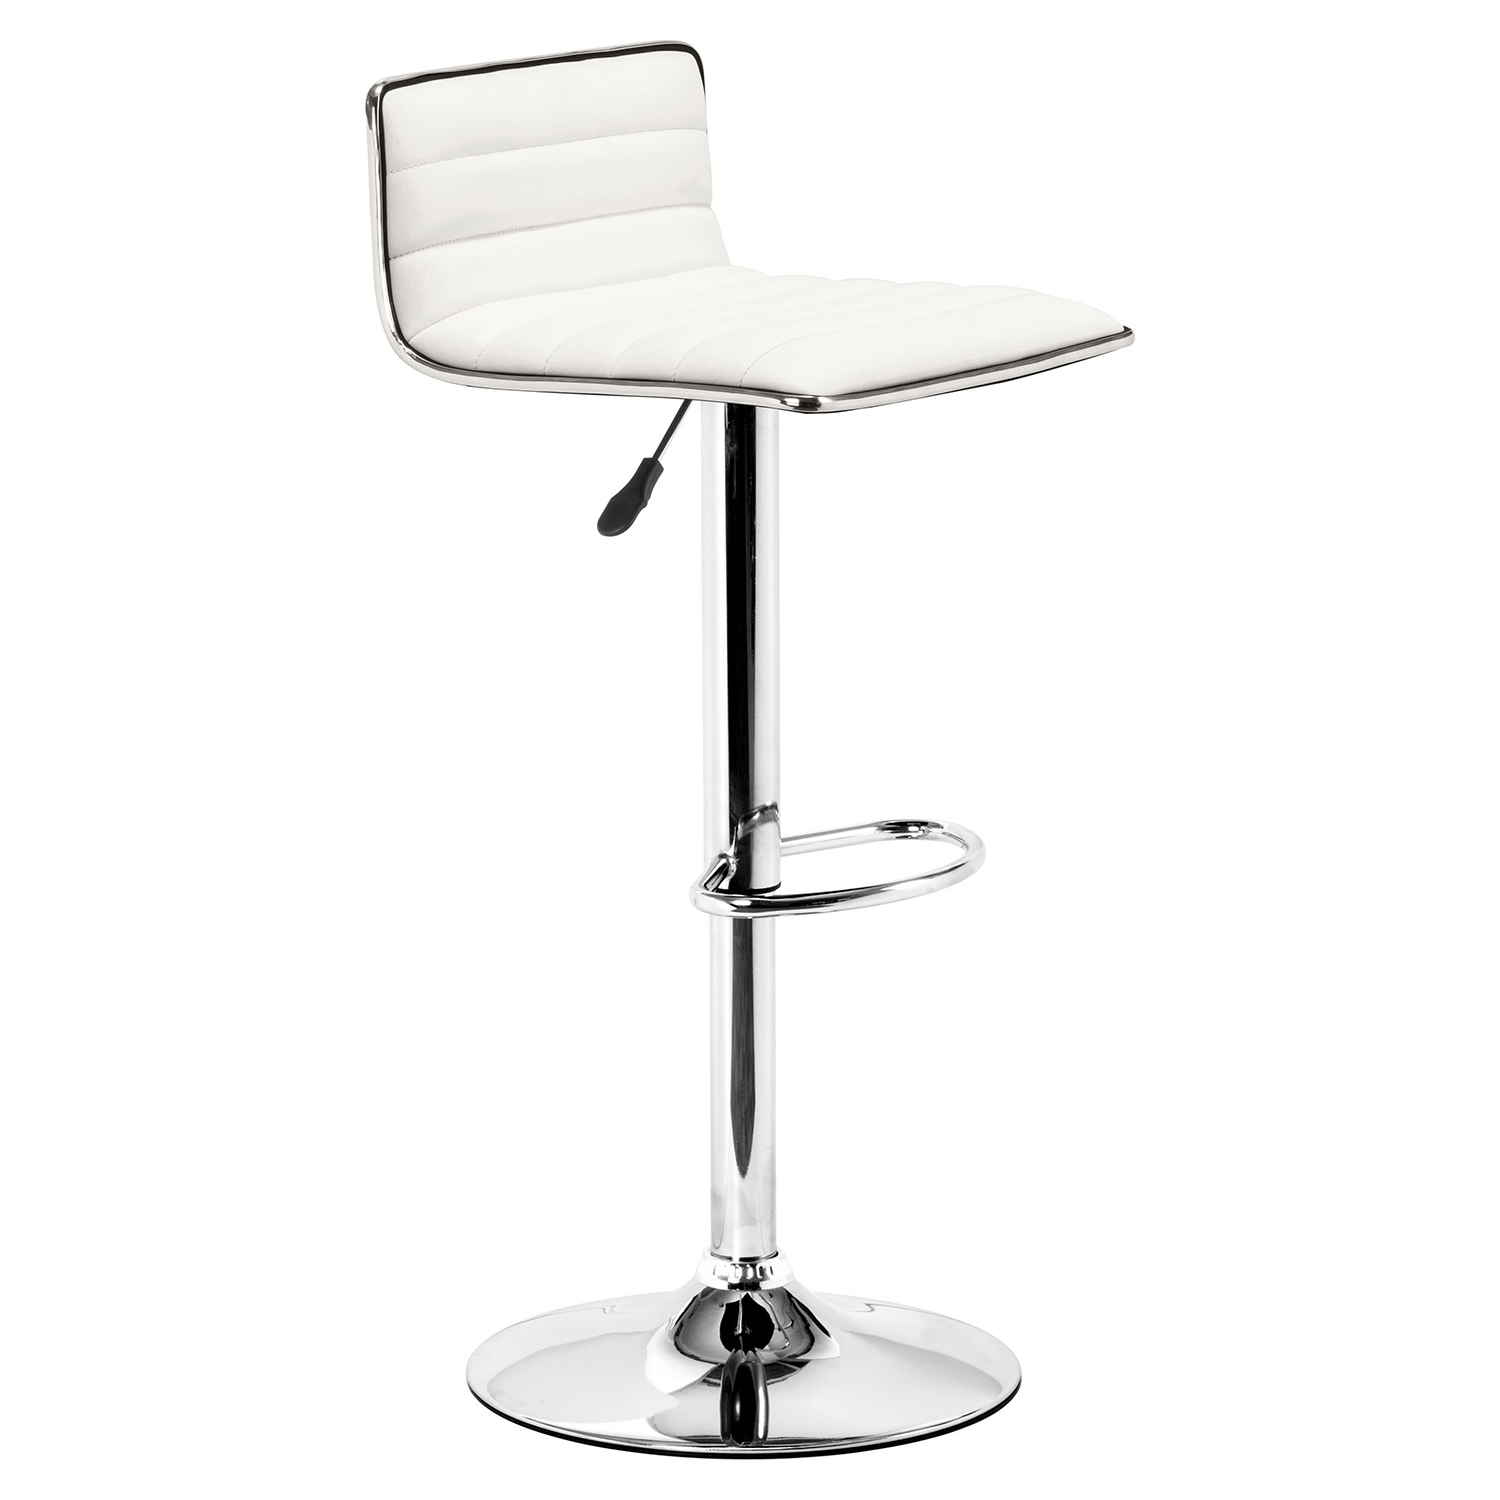 Equation White Bar Chair - Swivel, Adjustable - ZM-300219